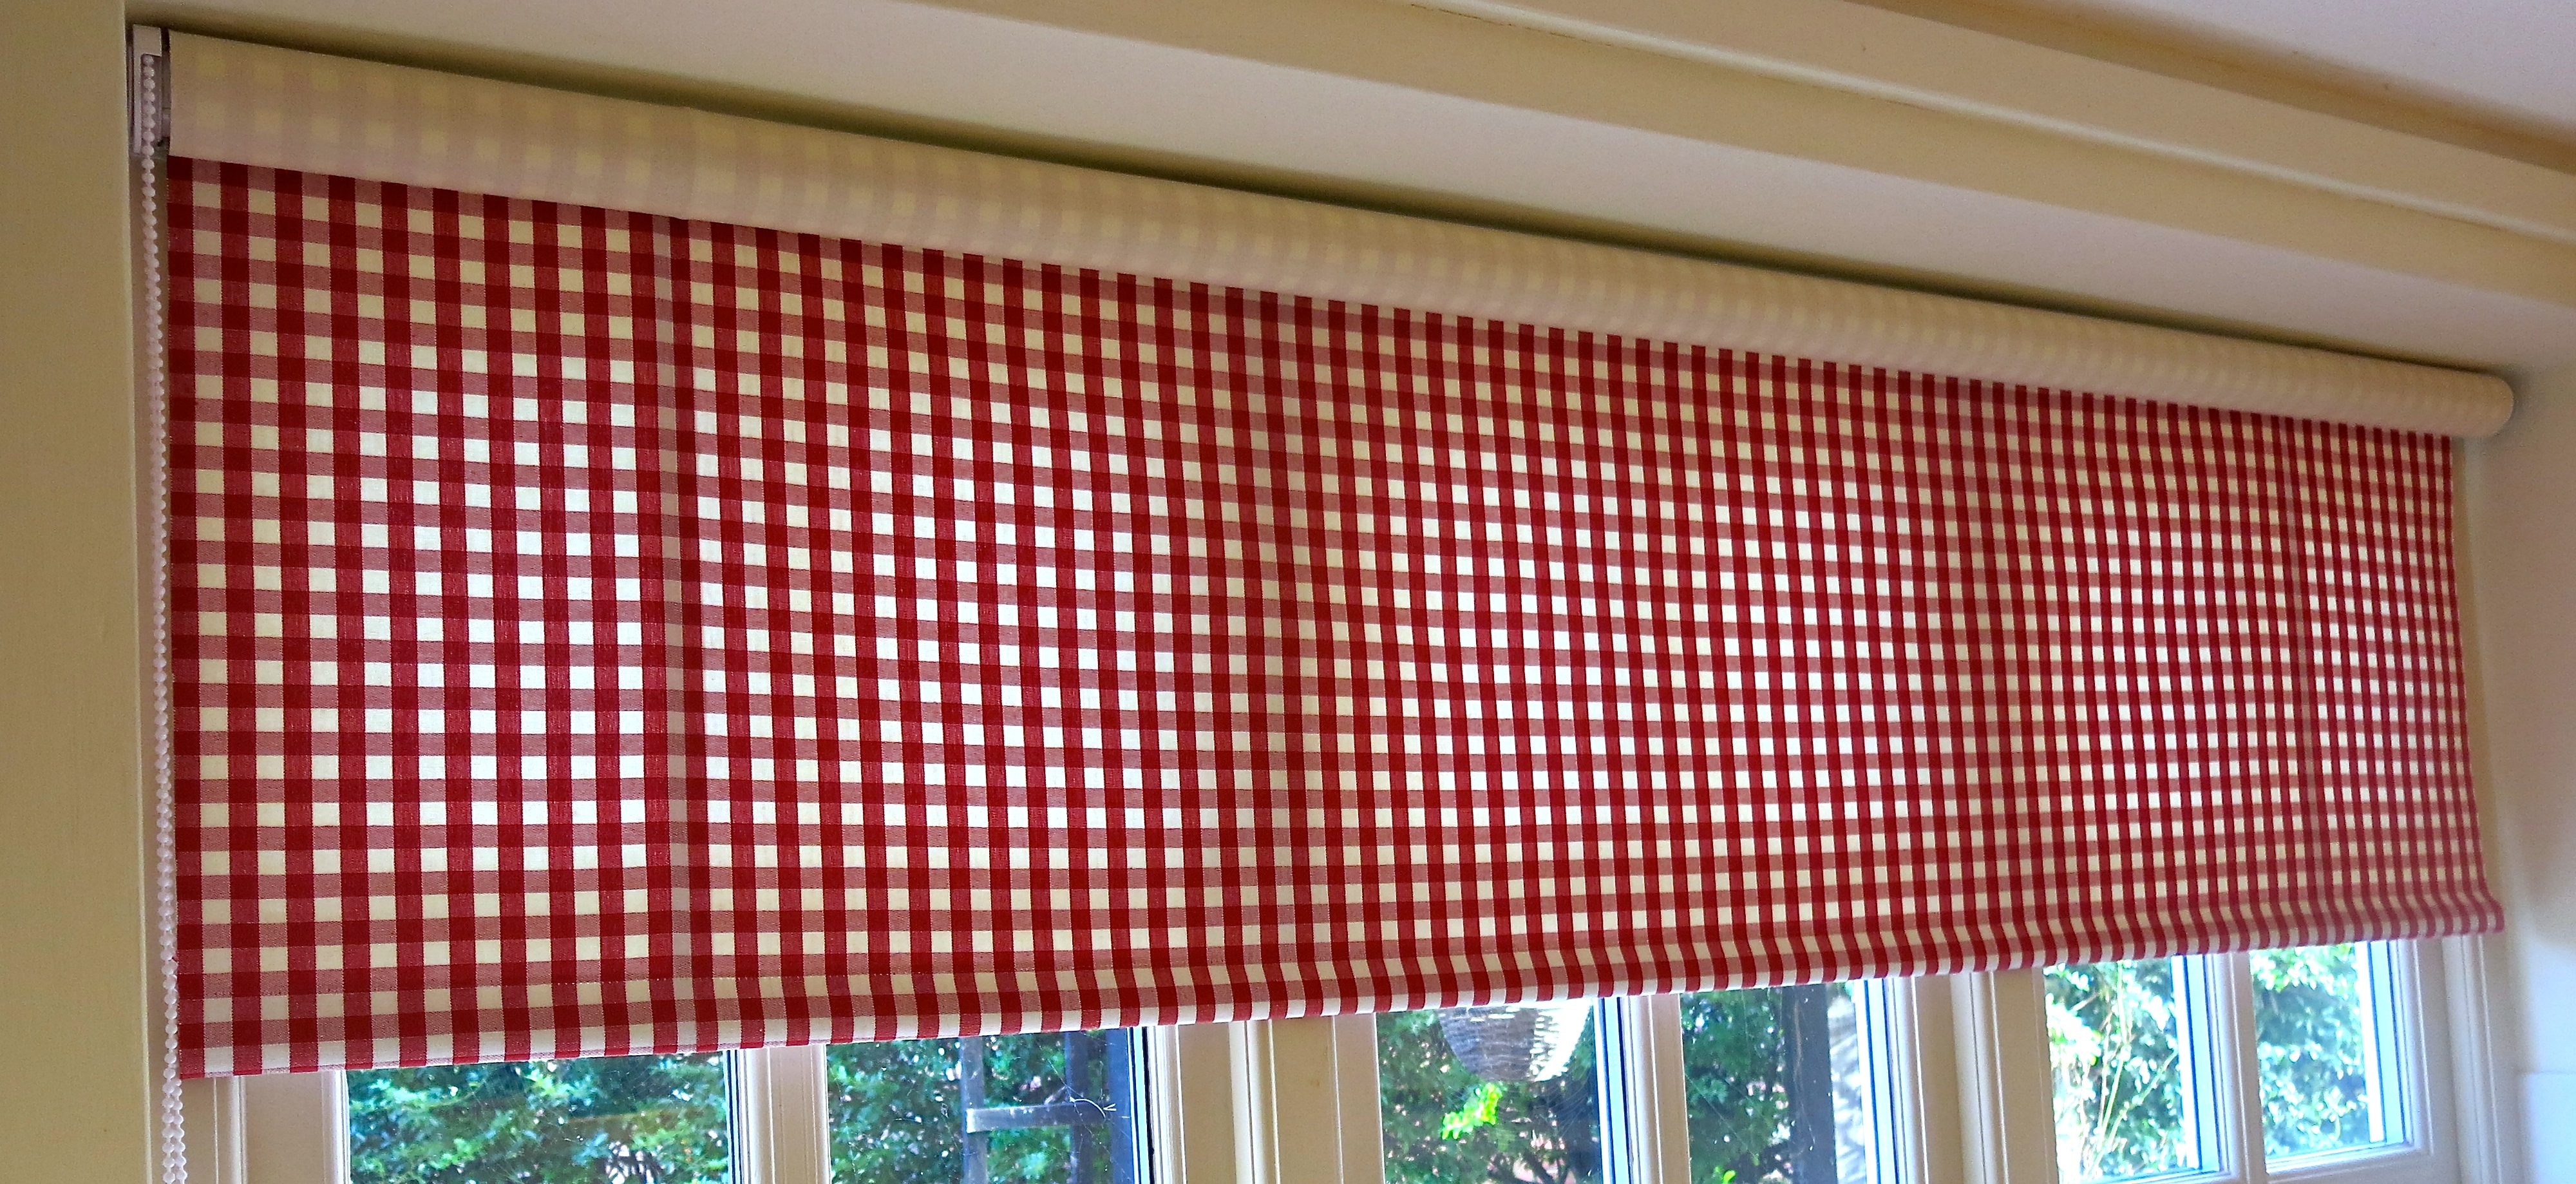 Making Roman Blinds Archives Lucy Loves Ya With Gingham Roman Blinds (View 1 of 15)